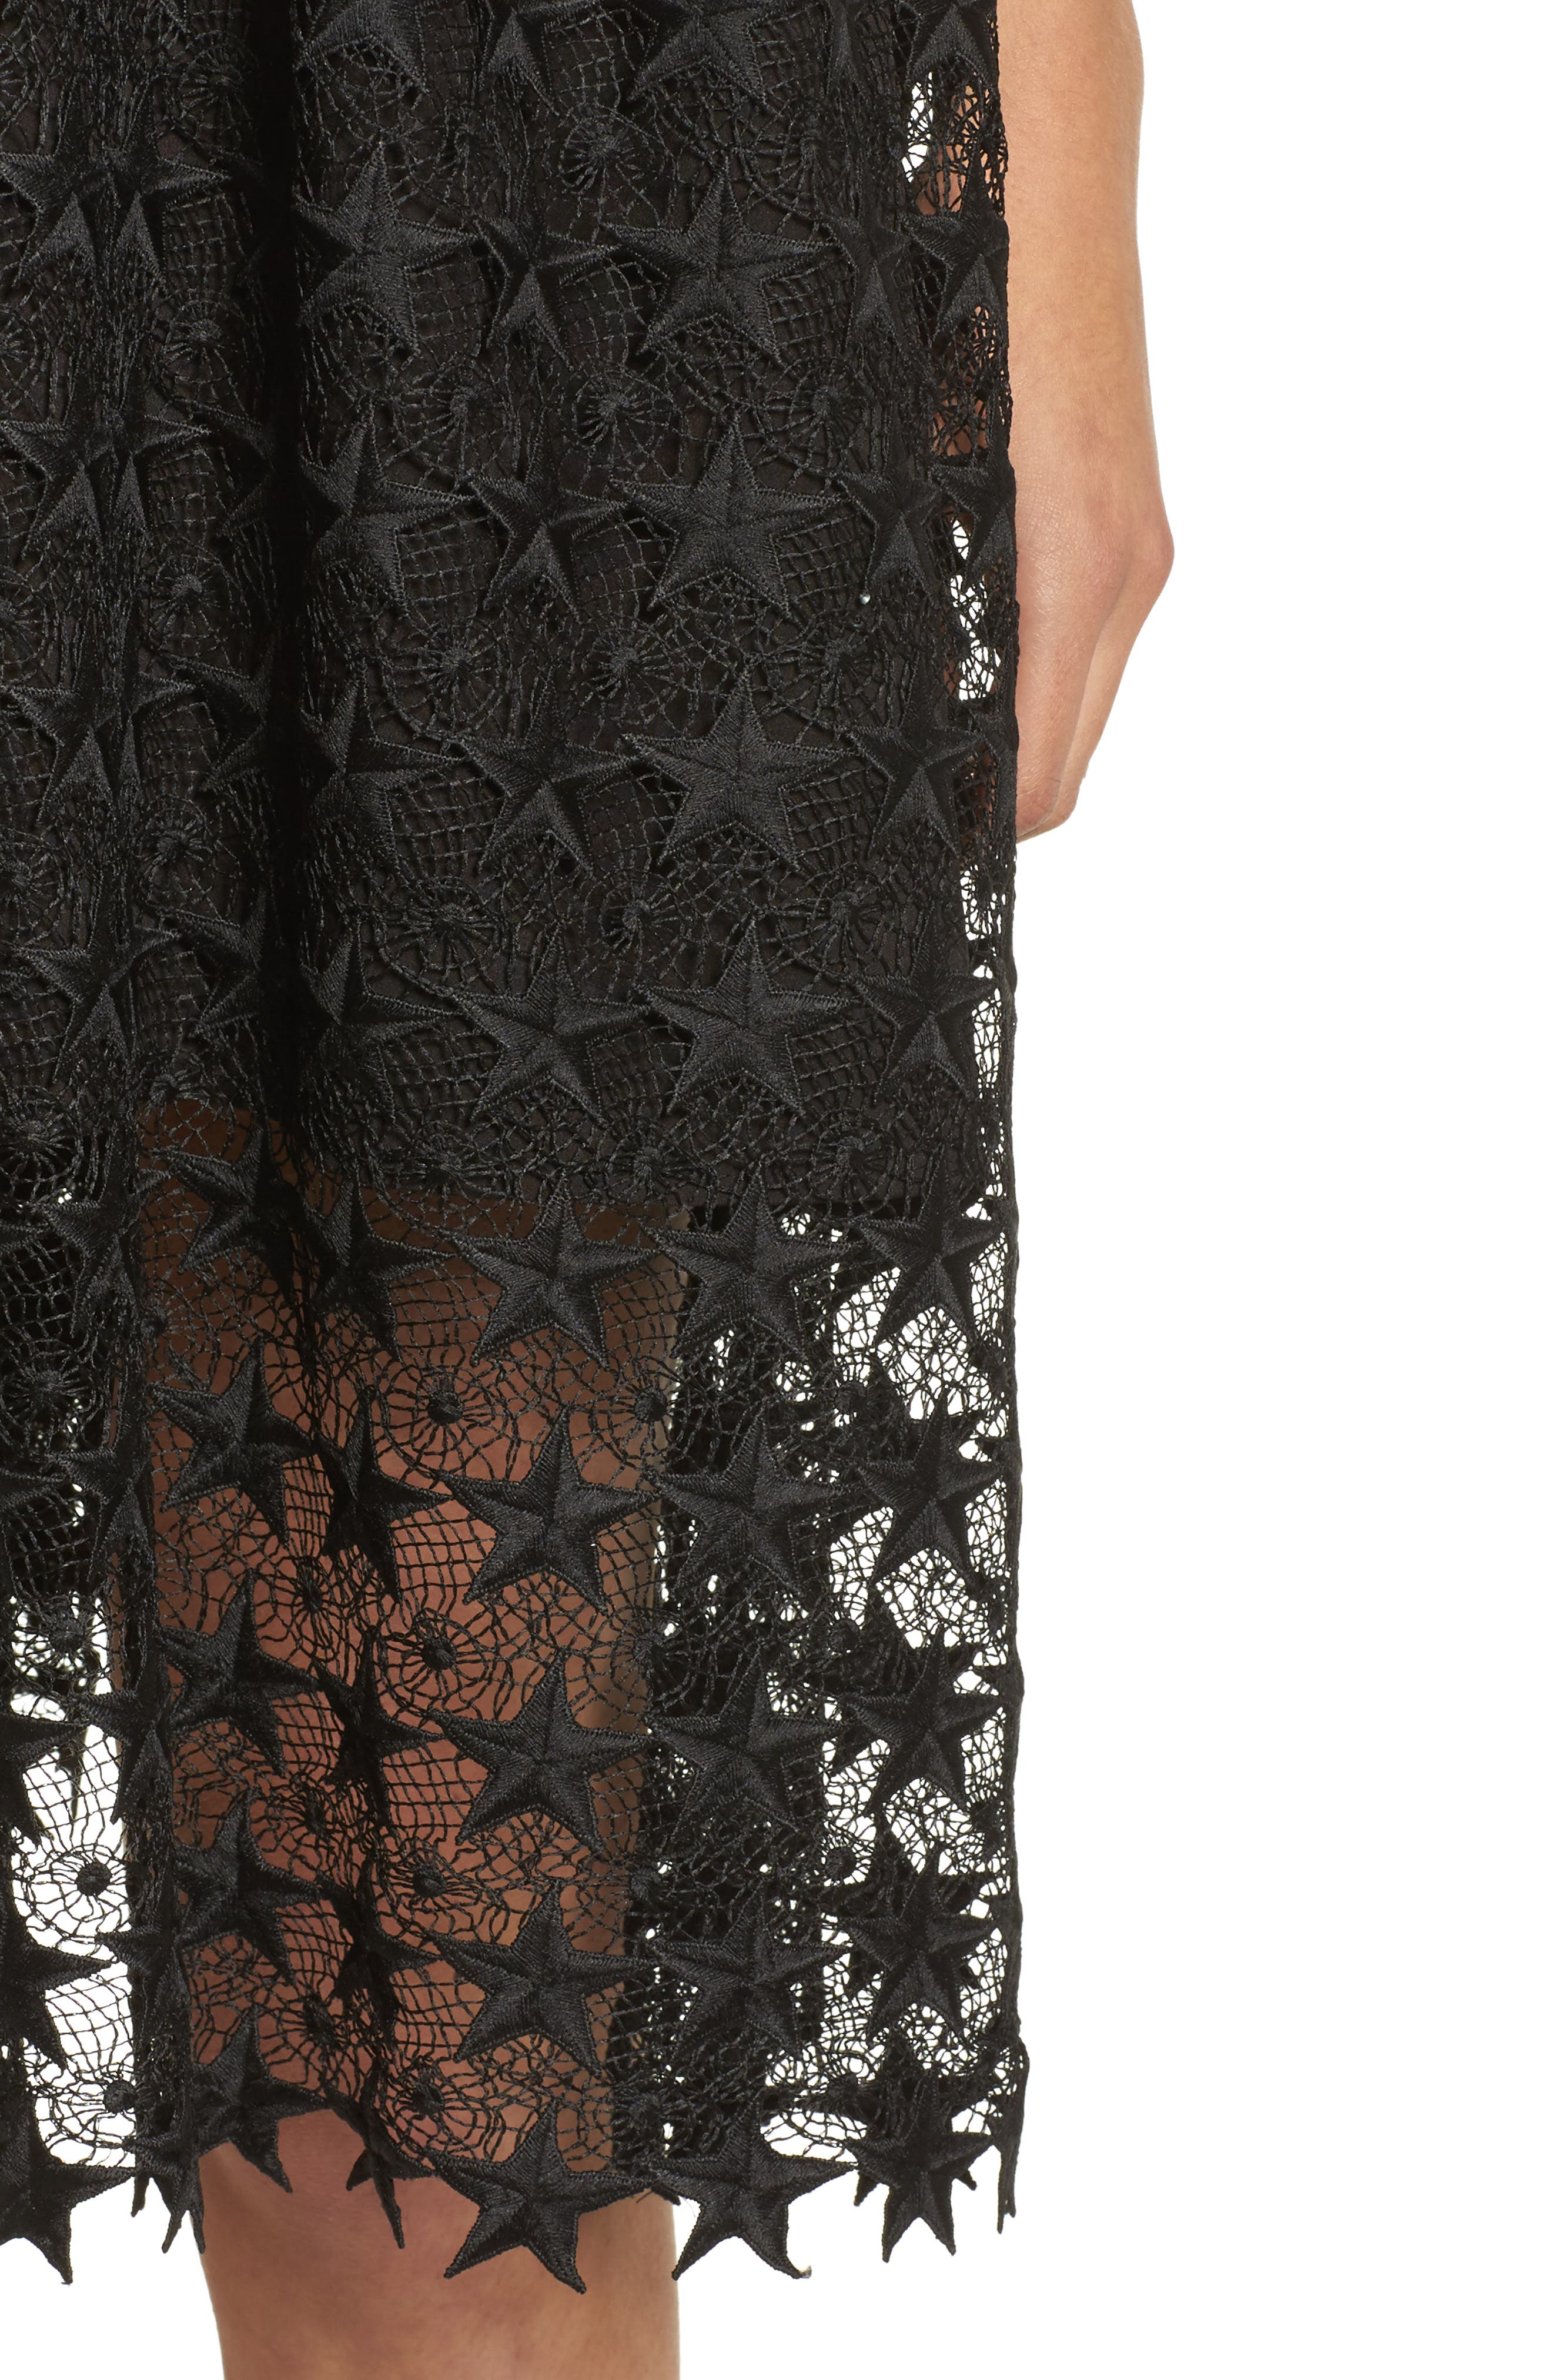 Star Lace Fit & Flare Dress,                             Alternate thumbnail 4, color,                             001